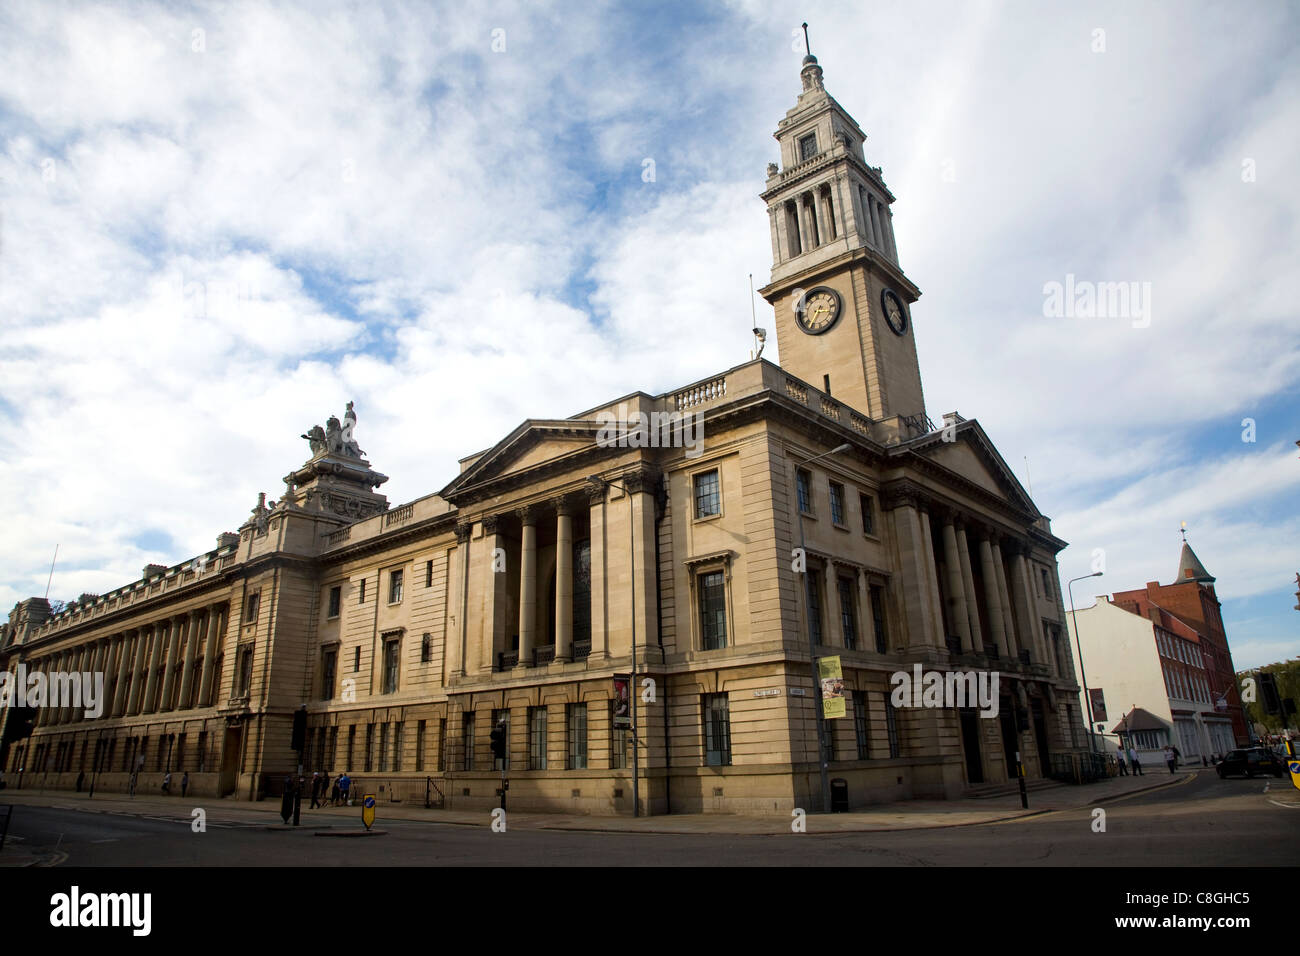 The Guildhall building, Hull, Yorkshire, England - Stock Image